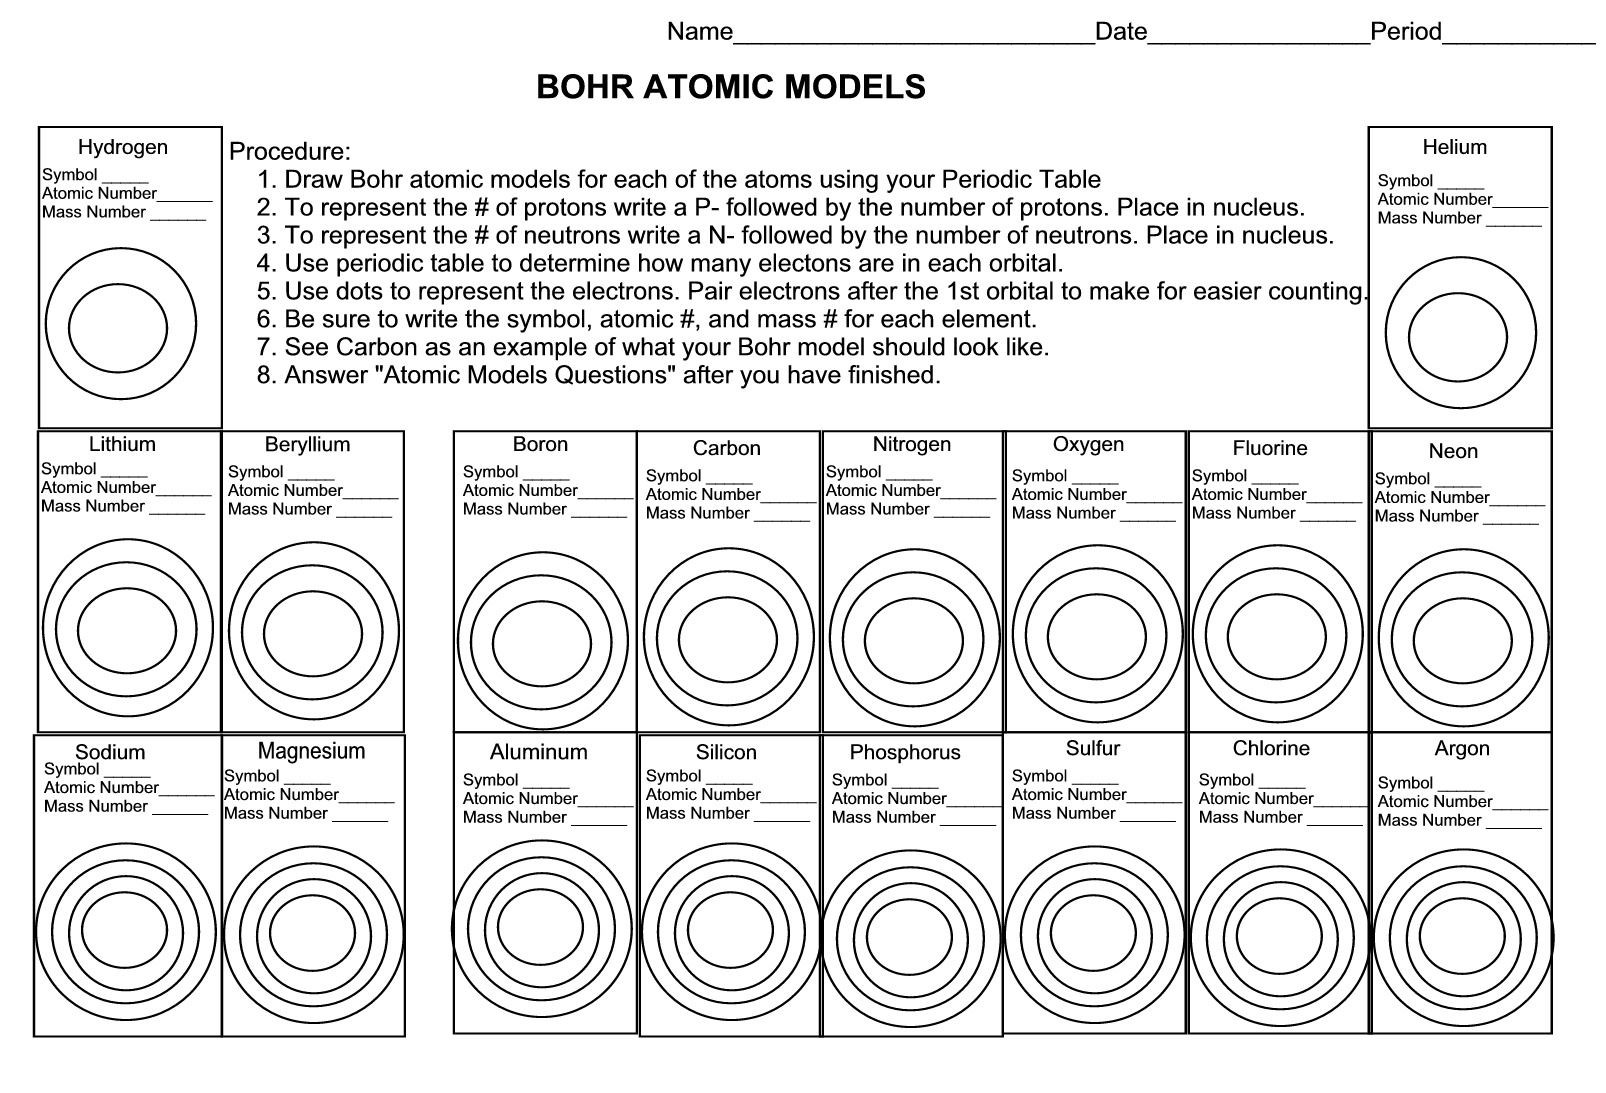 Bohr Model Worksheet Middle School atomic Structure Review Worksheet Fill In the Blank